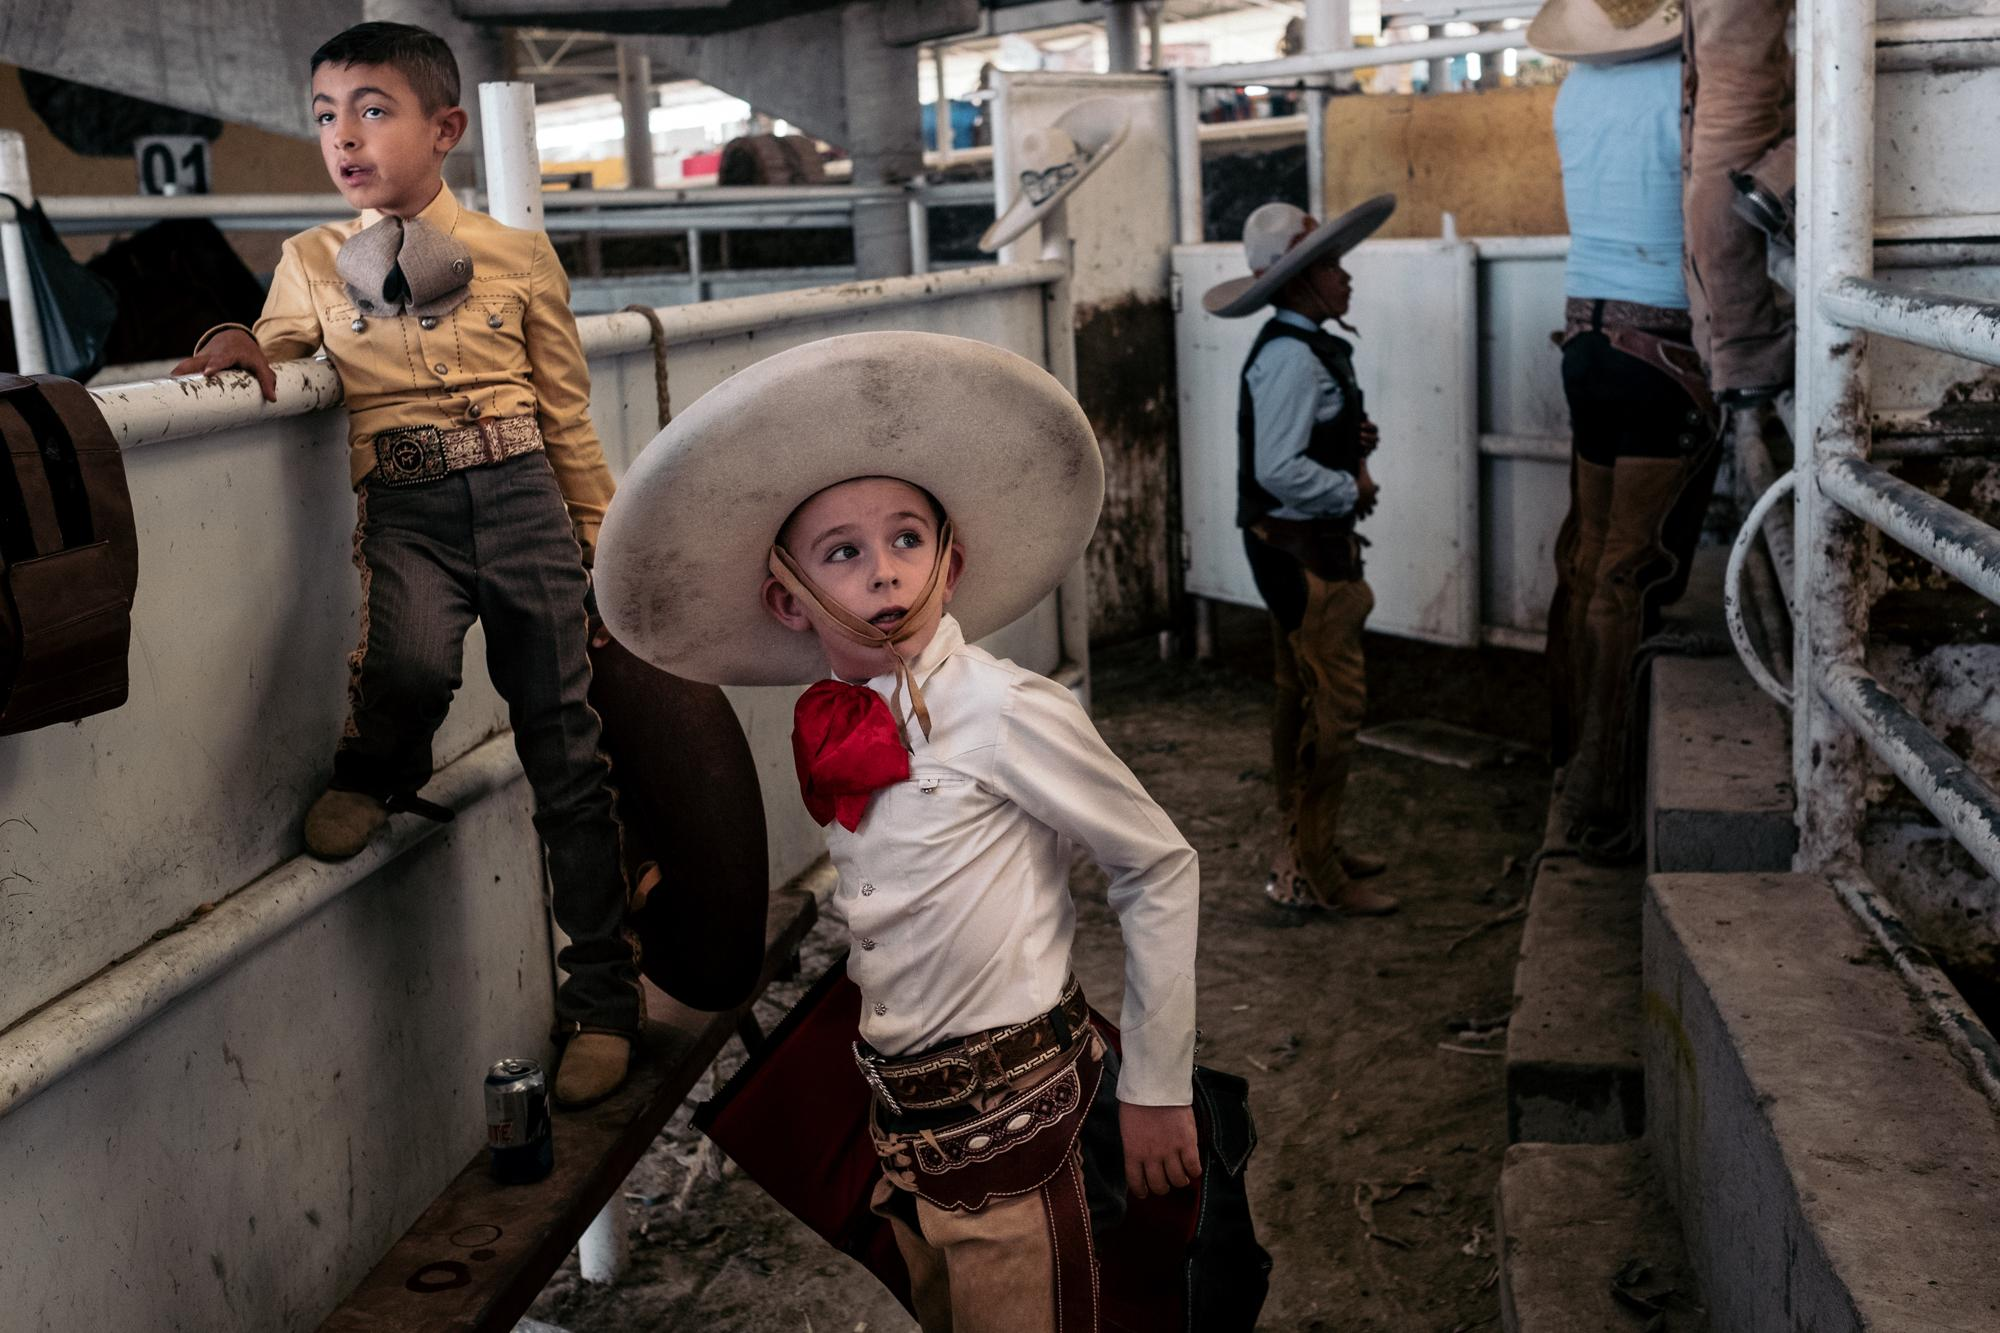 Un jeune Charro se prepare a monter sur un taureau lors du championnat national enfants et adolescents de Charreria. 26/07/18 Ezequiel Montes, Queretaro, Mexique. A young Charro is preparing to ride on a bull at the national championship of Charreria. 26/07/18 Ezequiel Montes, Queretaro, Mexico.